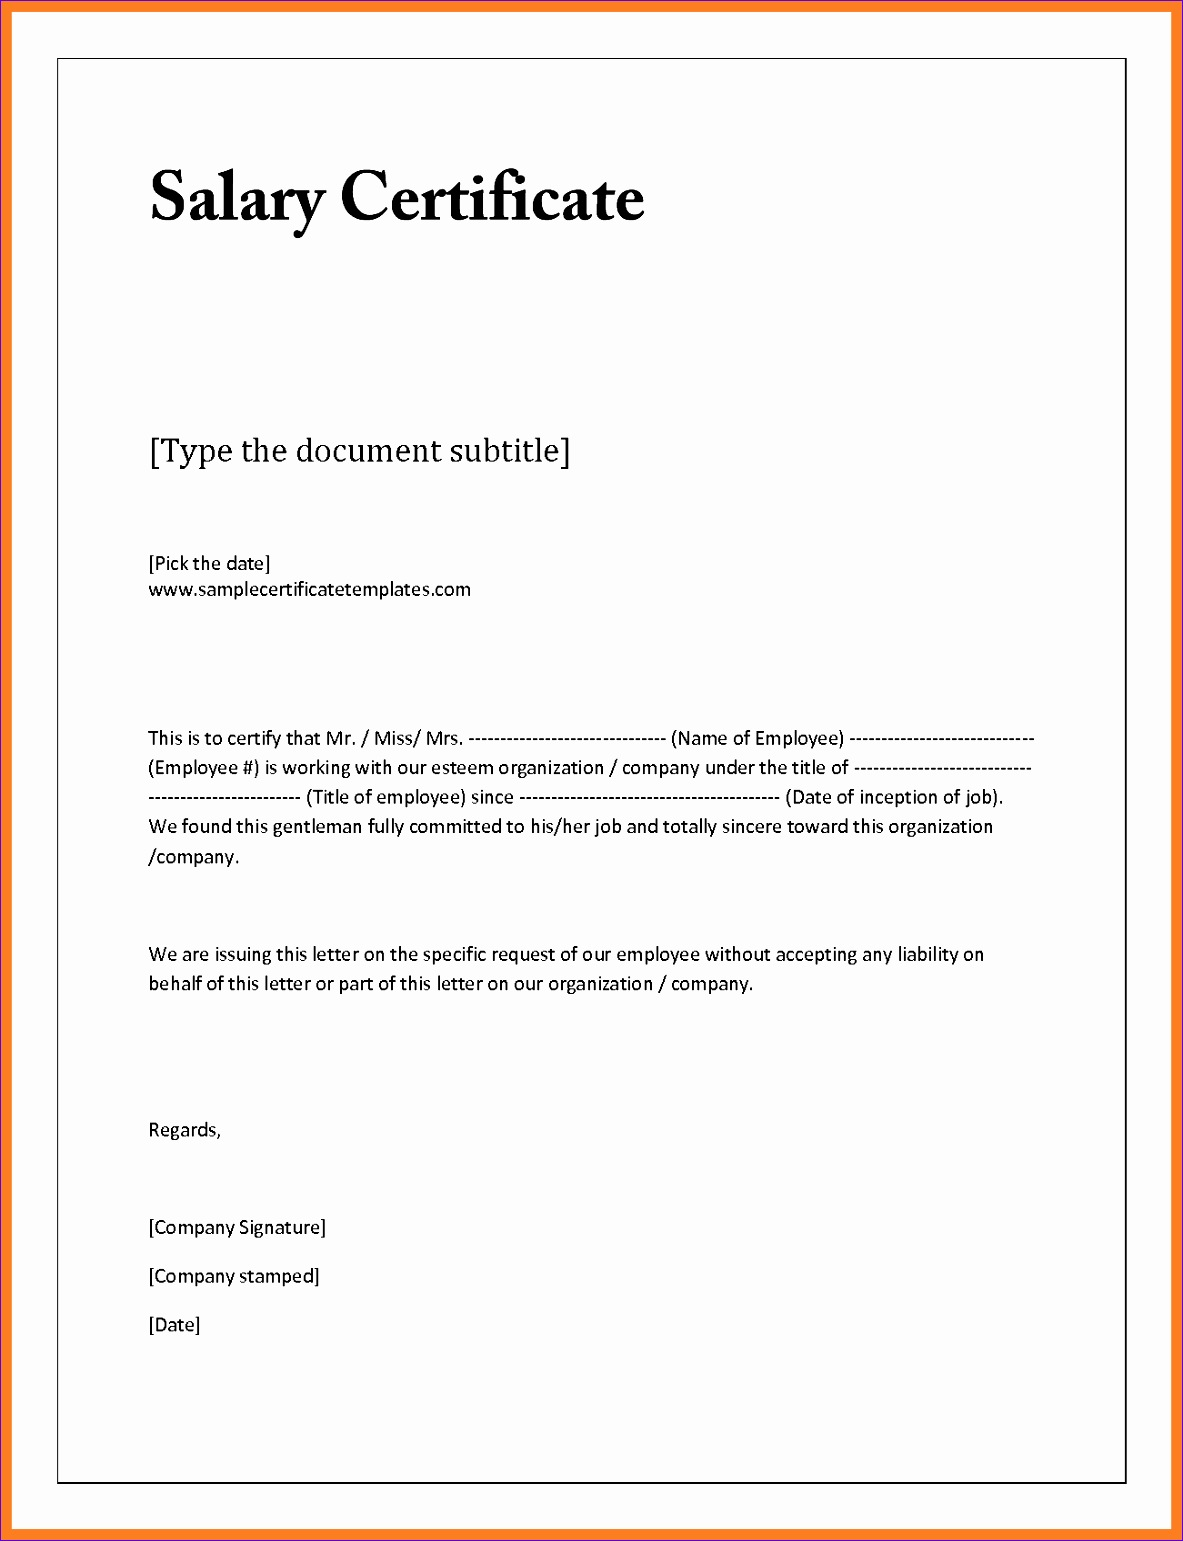 salary certificate letter pdf salary confirmation request letter doc sample salary certificate letter 21 free salary